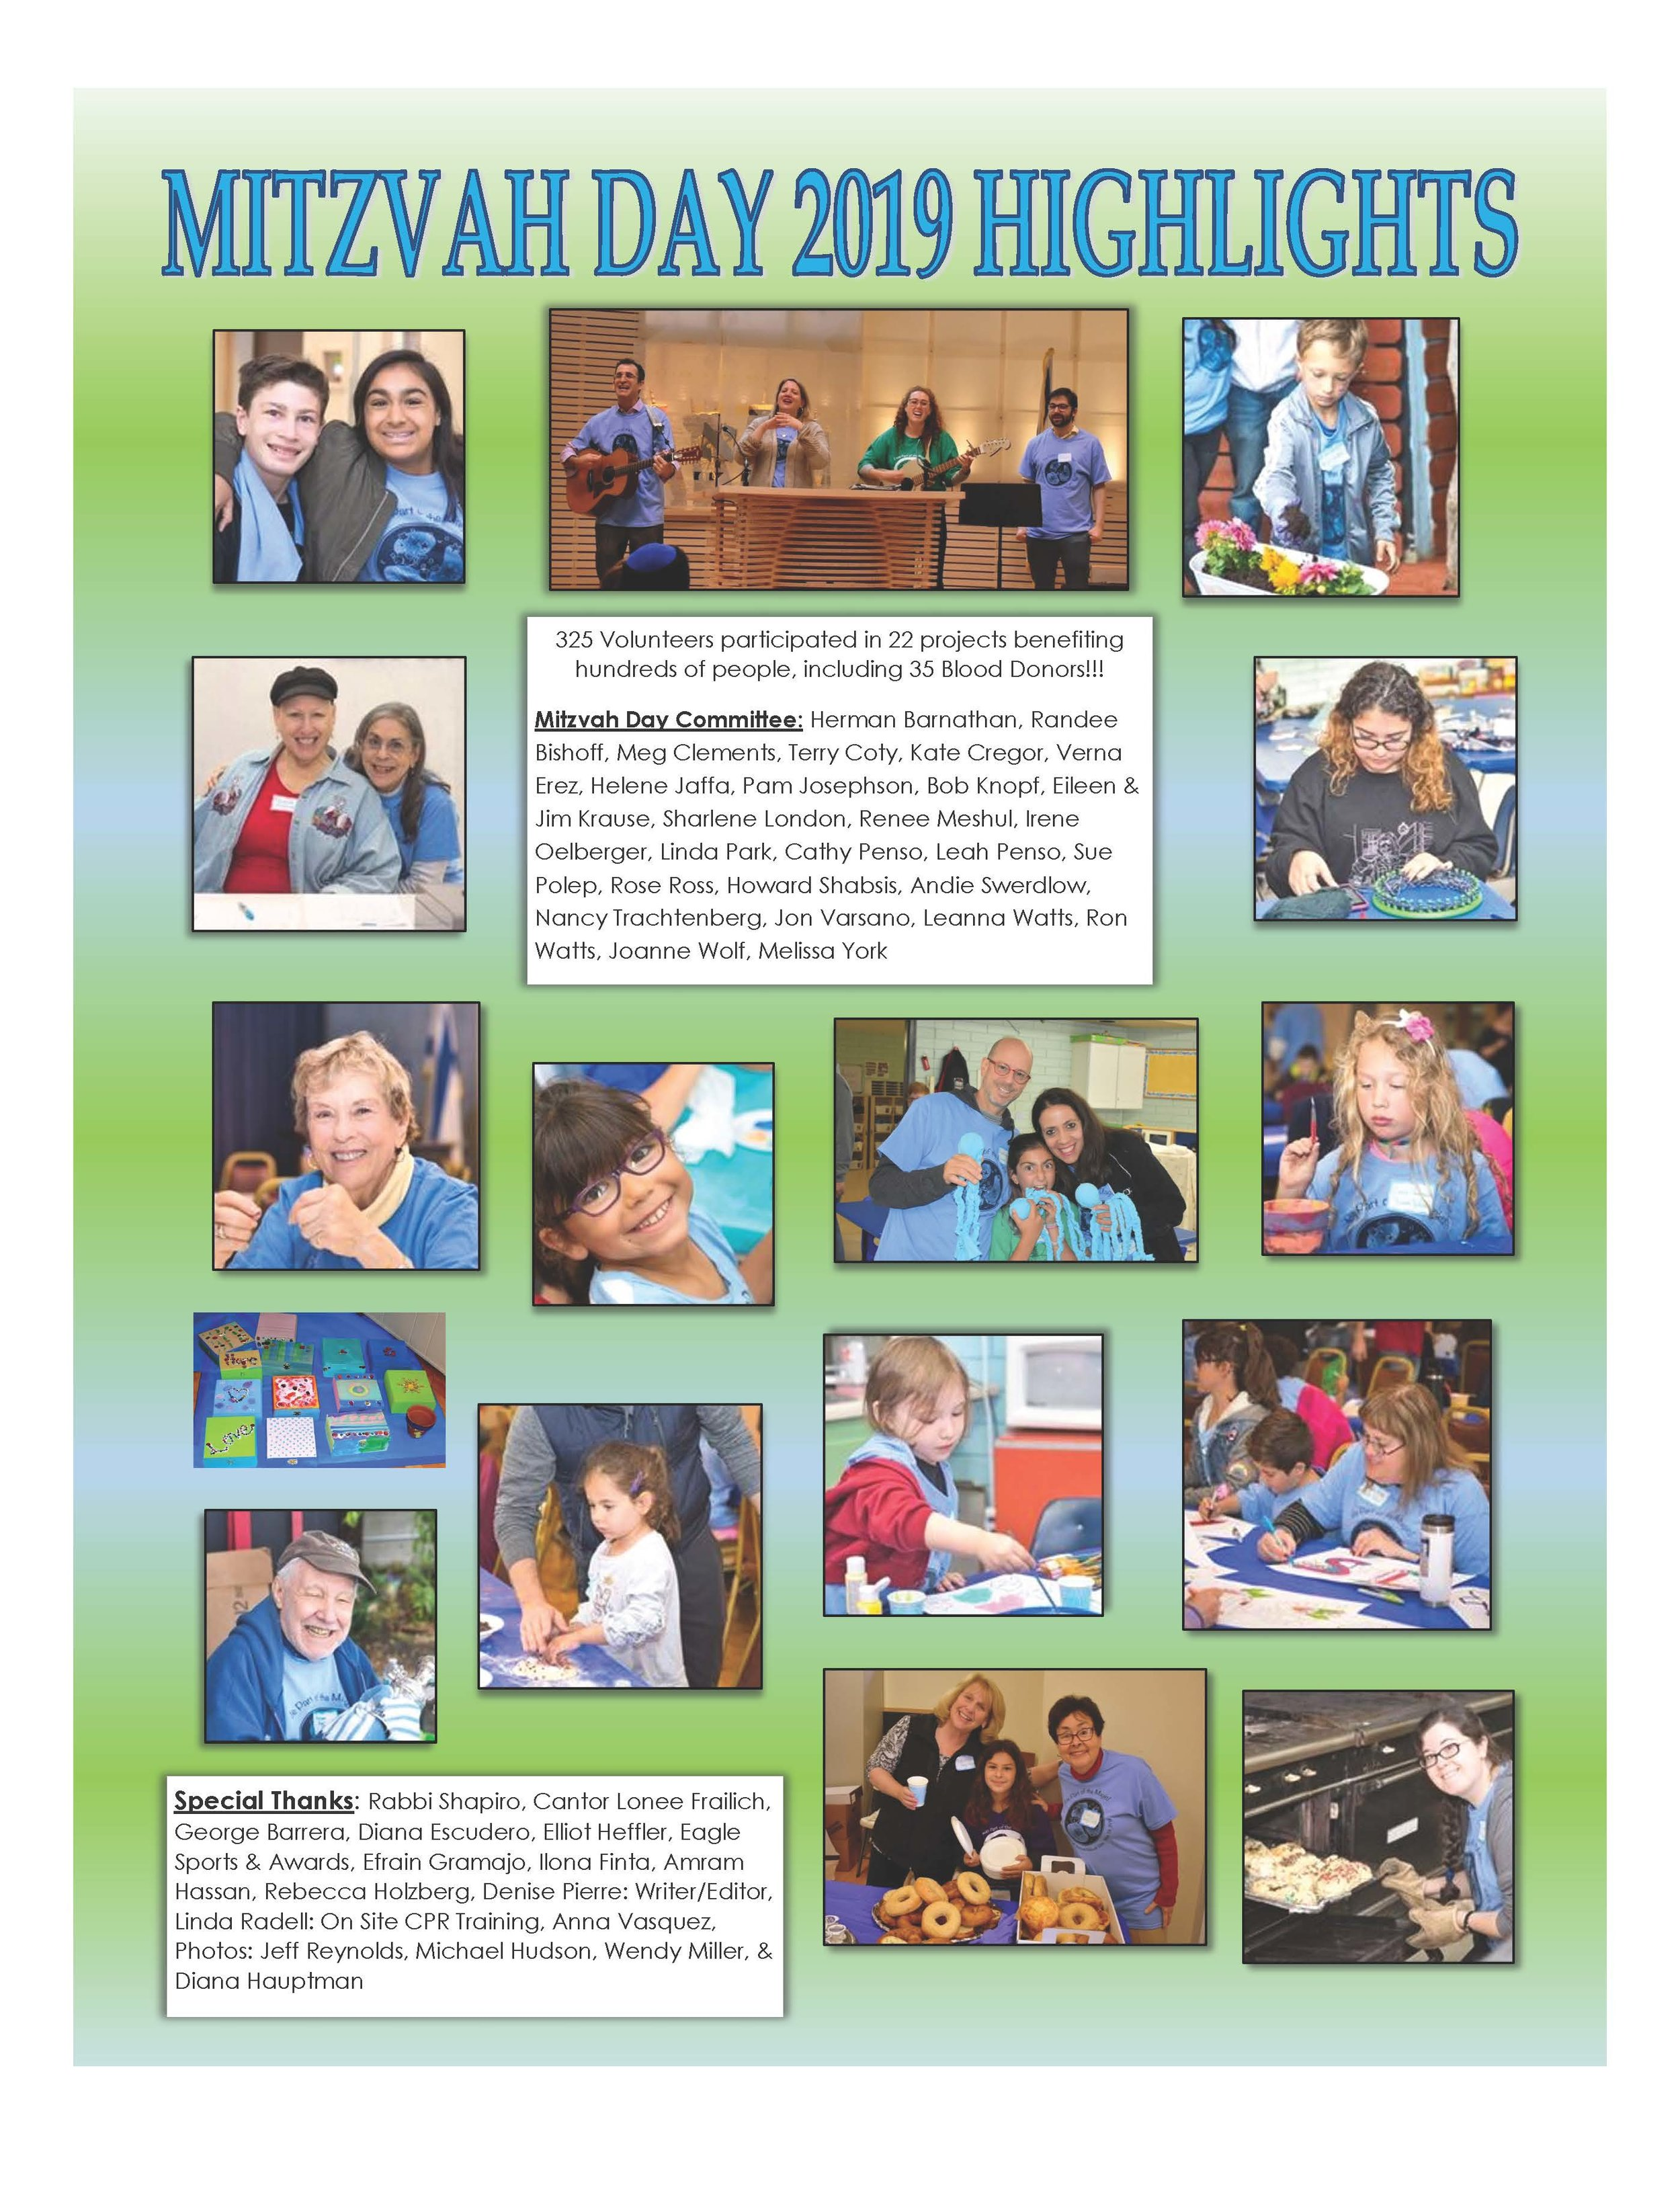 MITZVAH DAY HIGHLIGHTS FROM THE AKIBA BULLETIN